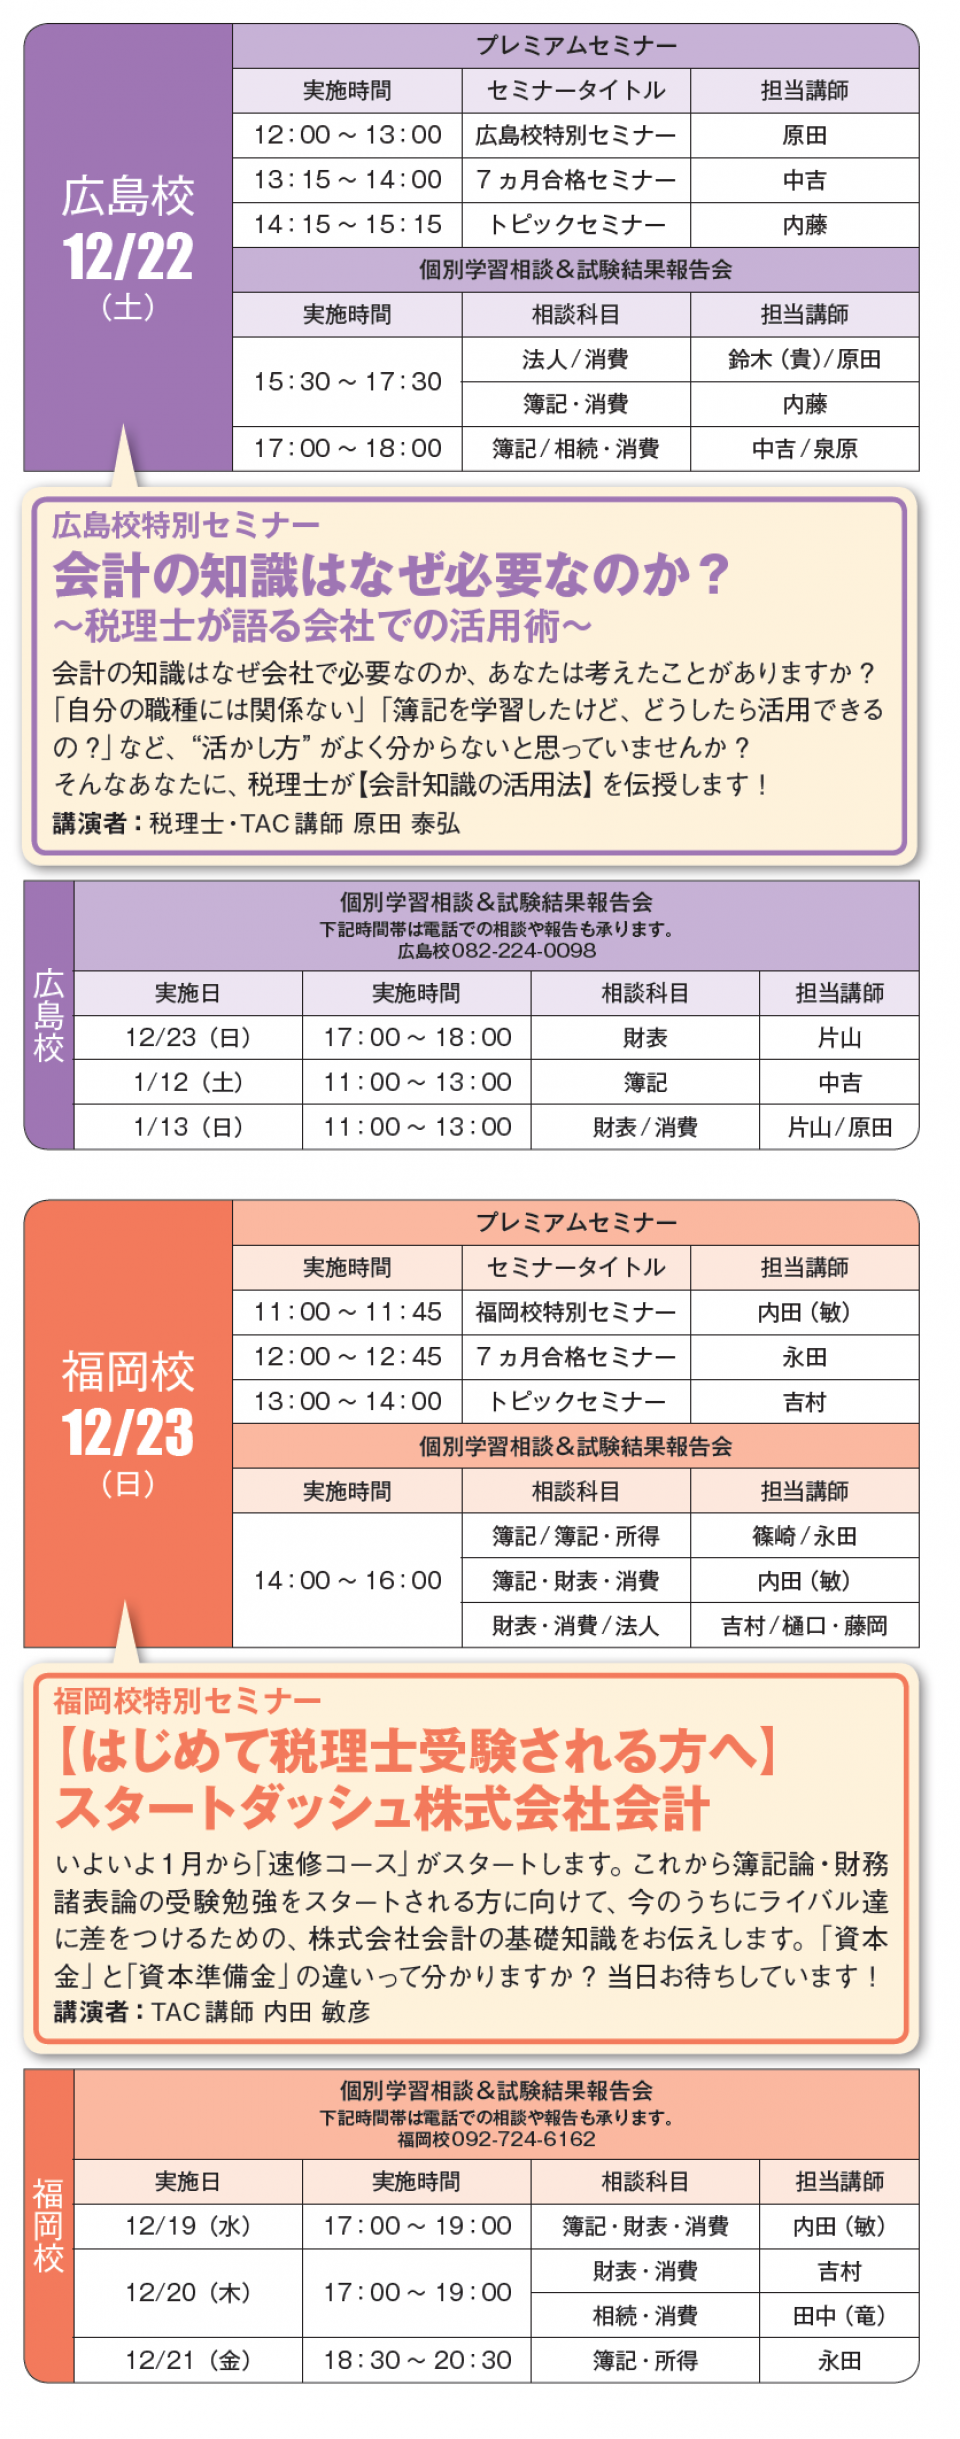 201812_zeiri_openfes_10.png